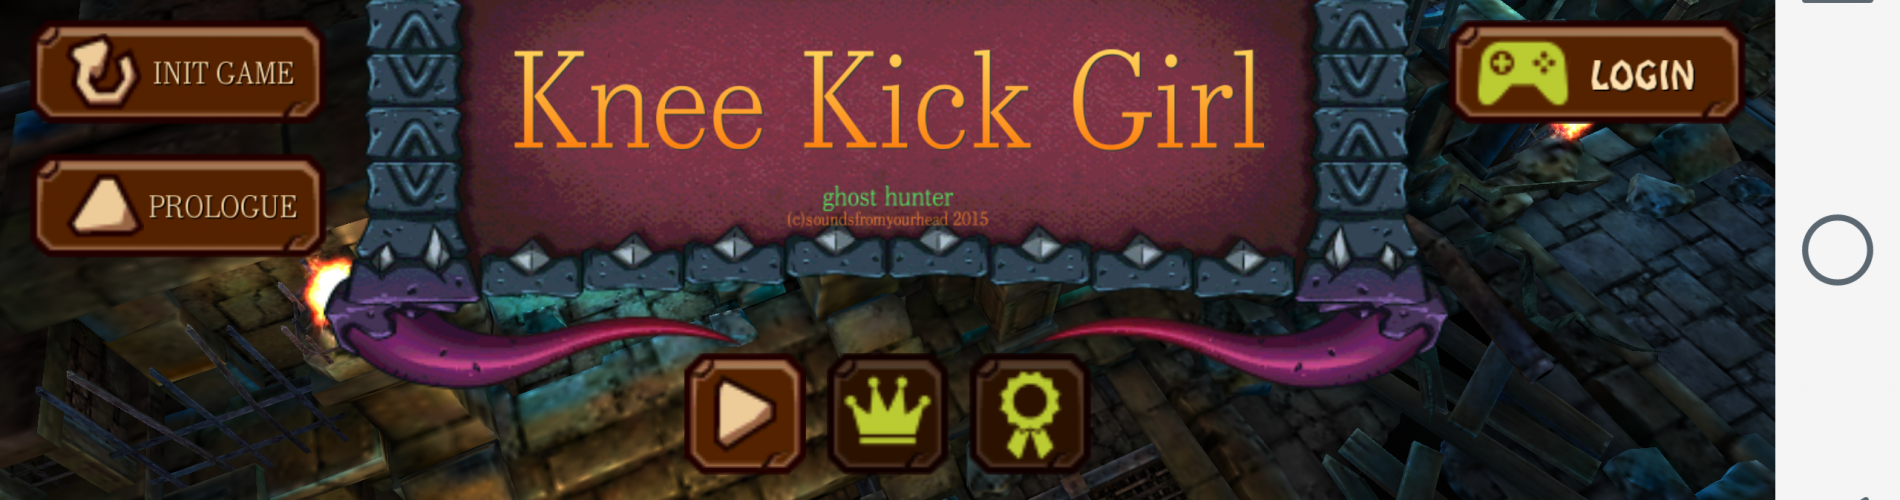 Knee Kick Girl: an RPG with loose controls, a paywall, and a good soundtrack (App Review)